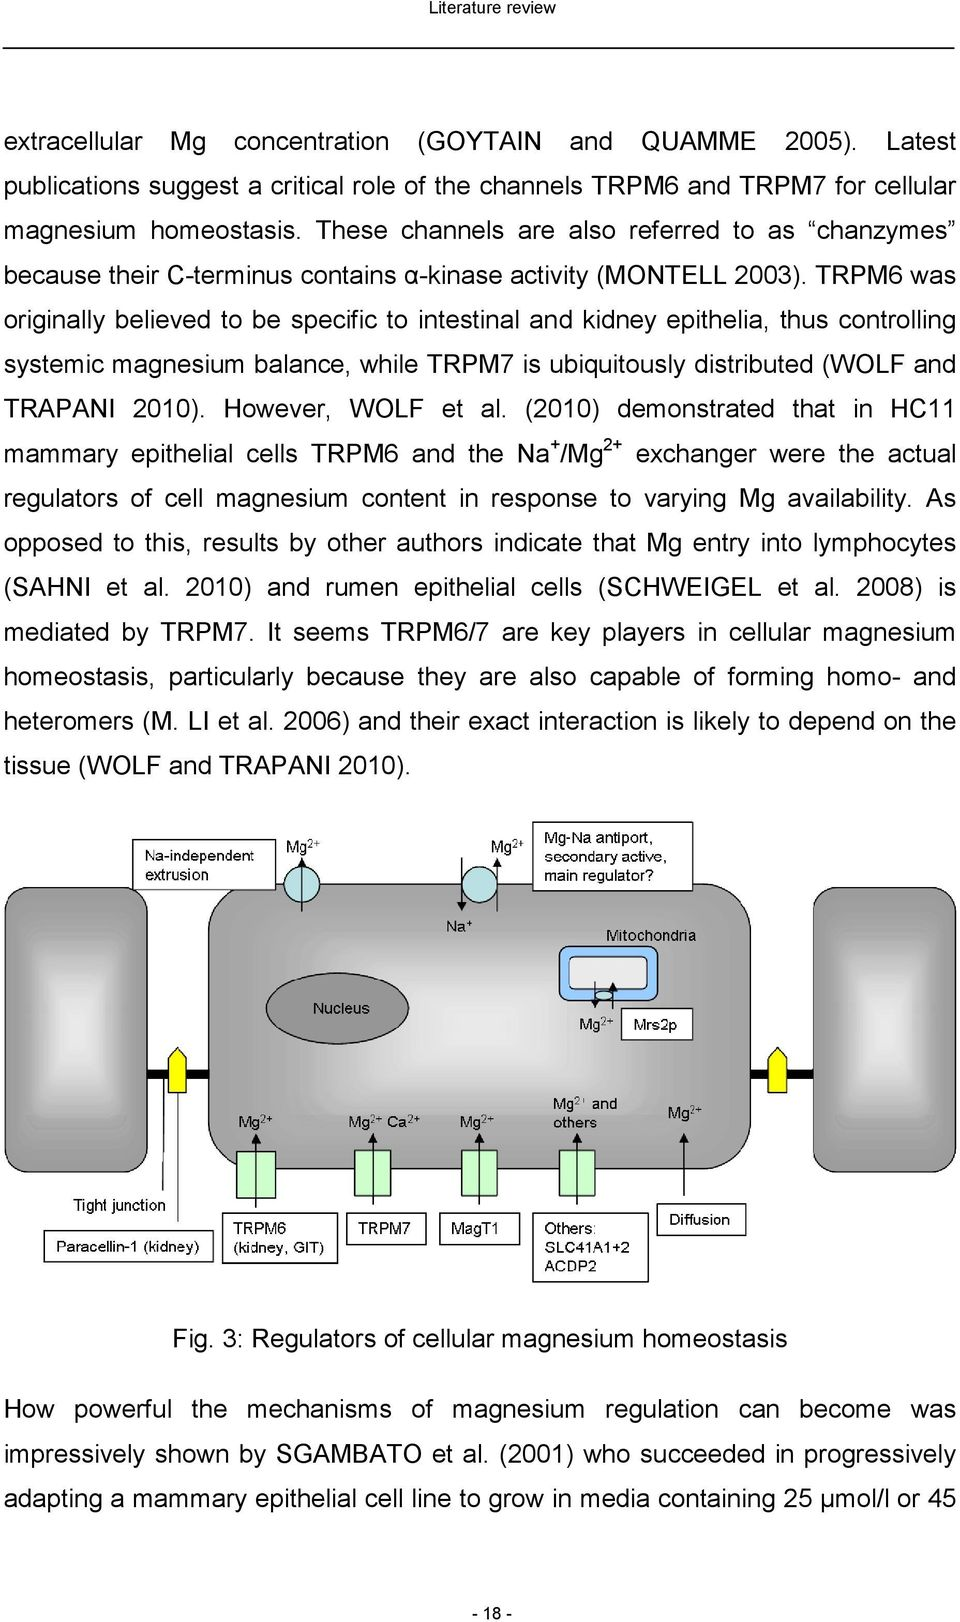 TRPM6 was originally believed to be specific to intestinal and kidney epithelia, thus controlling systemic magnesium balance, while TRPM7 is ubiquitously distributed (WOLF and TRAPANI 2010).